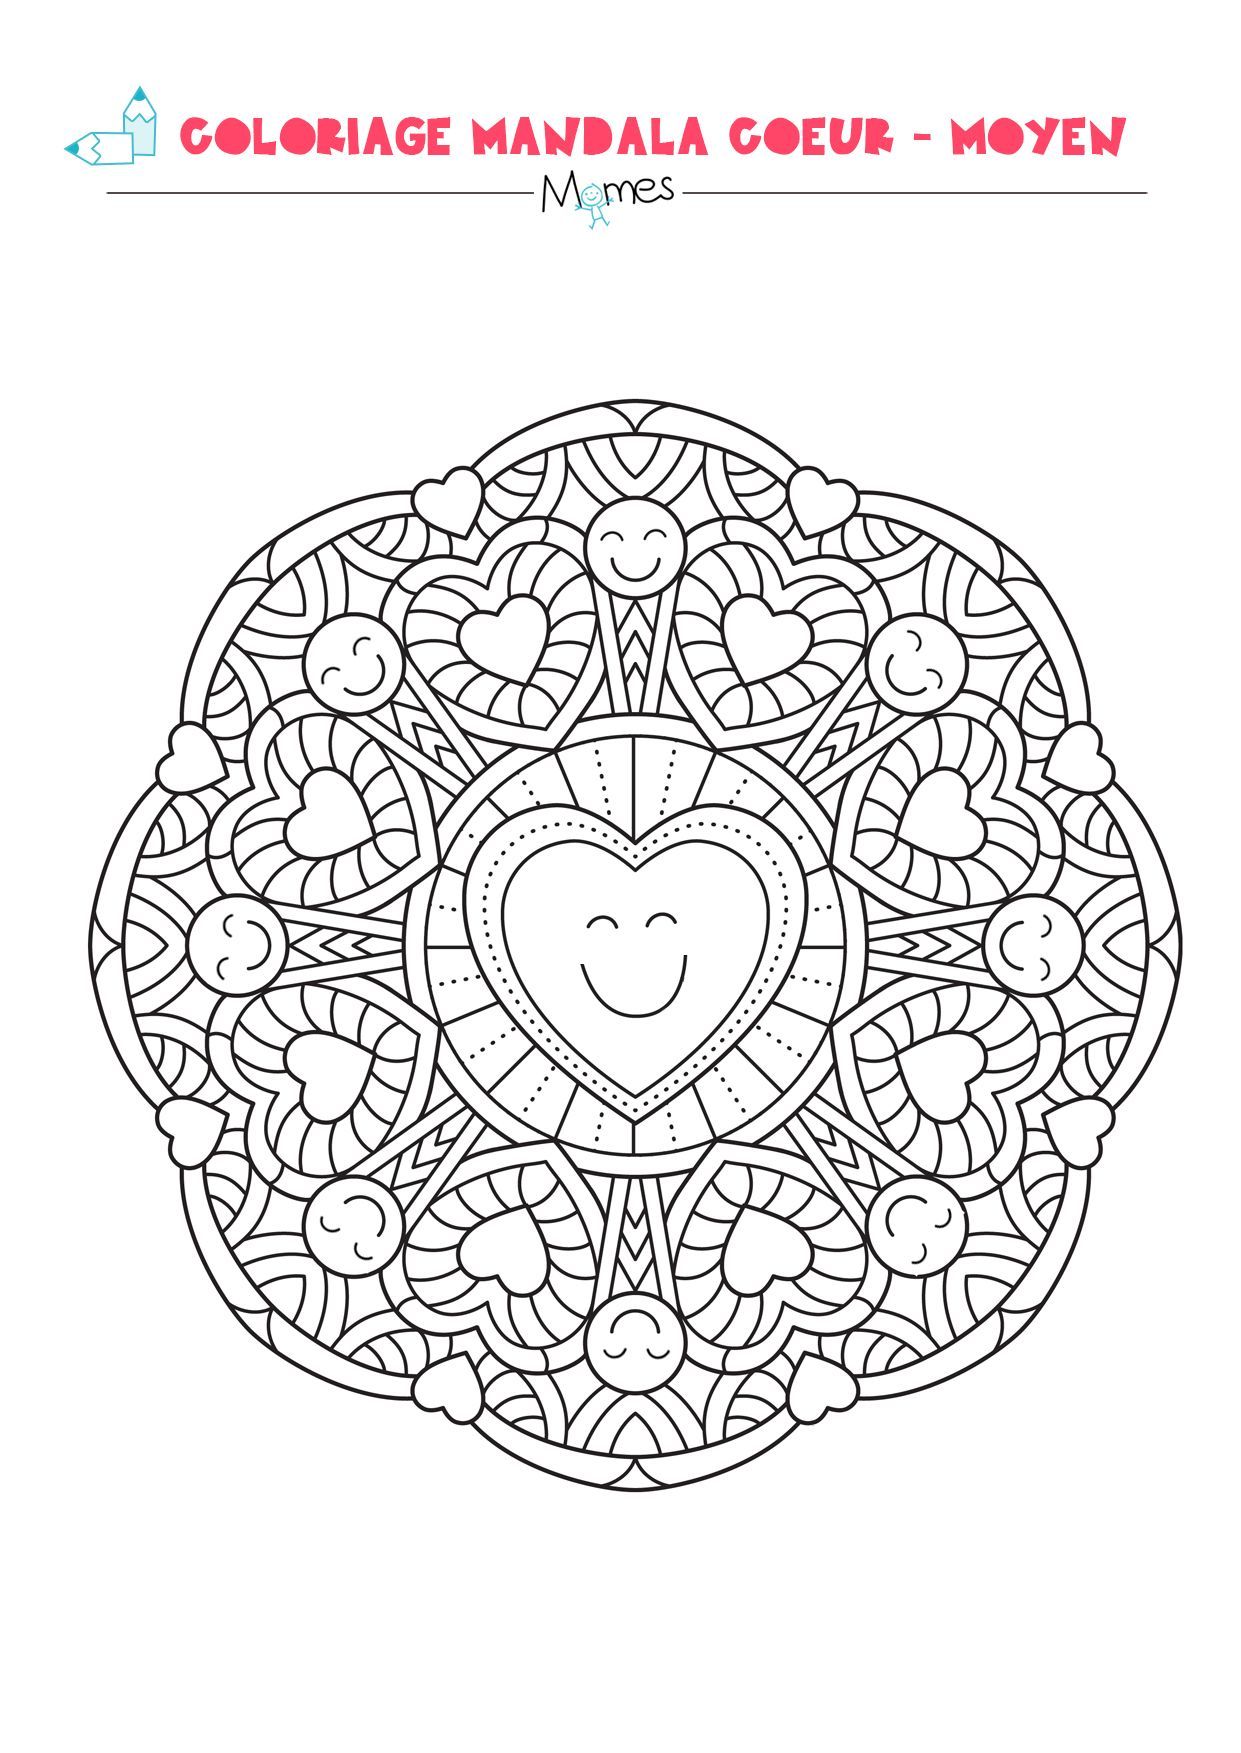 Outstanding Mandala Saint Valentin Photo - Printable Coloring Pages ...